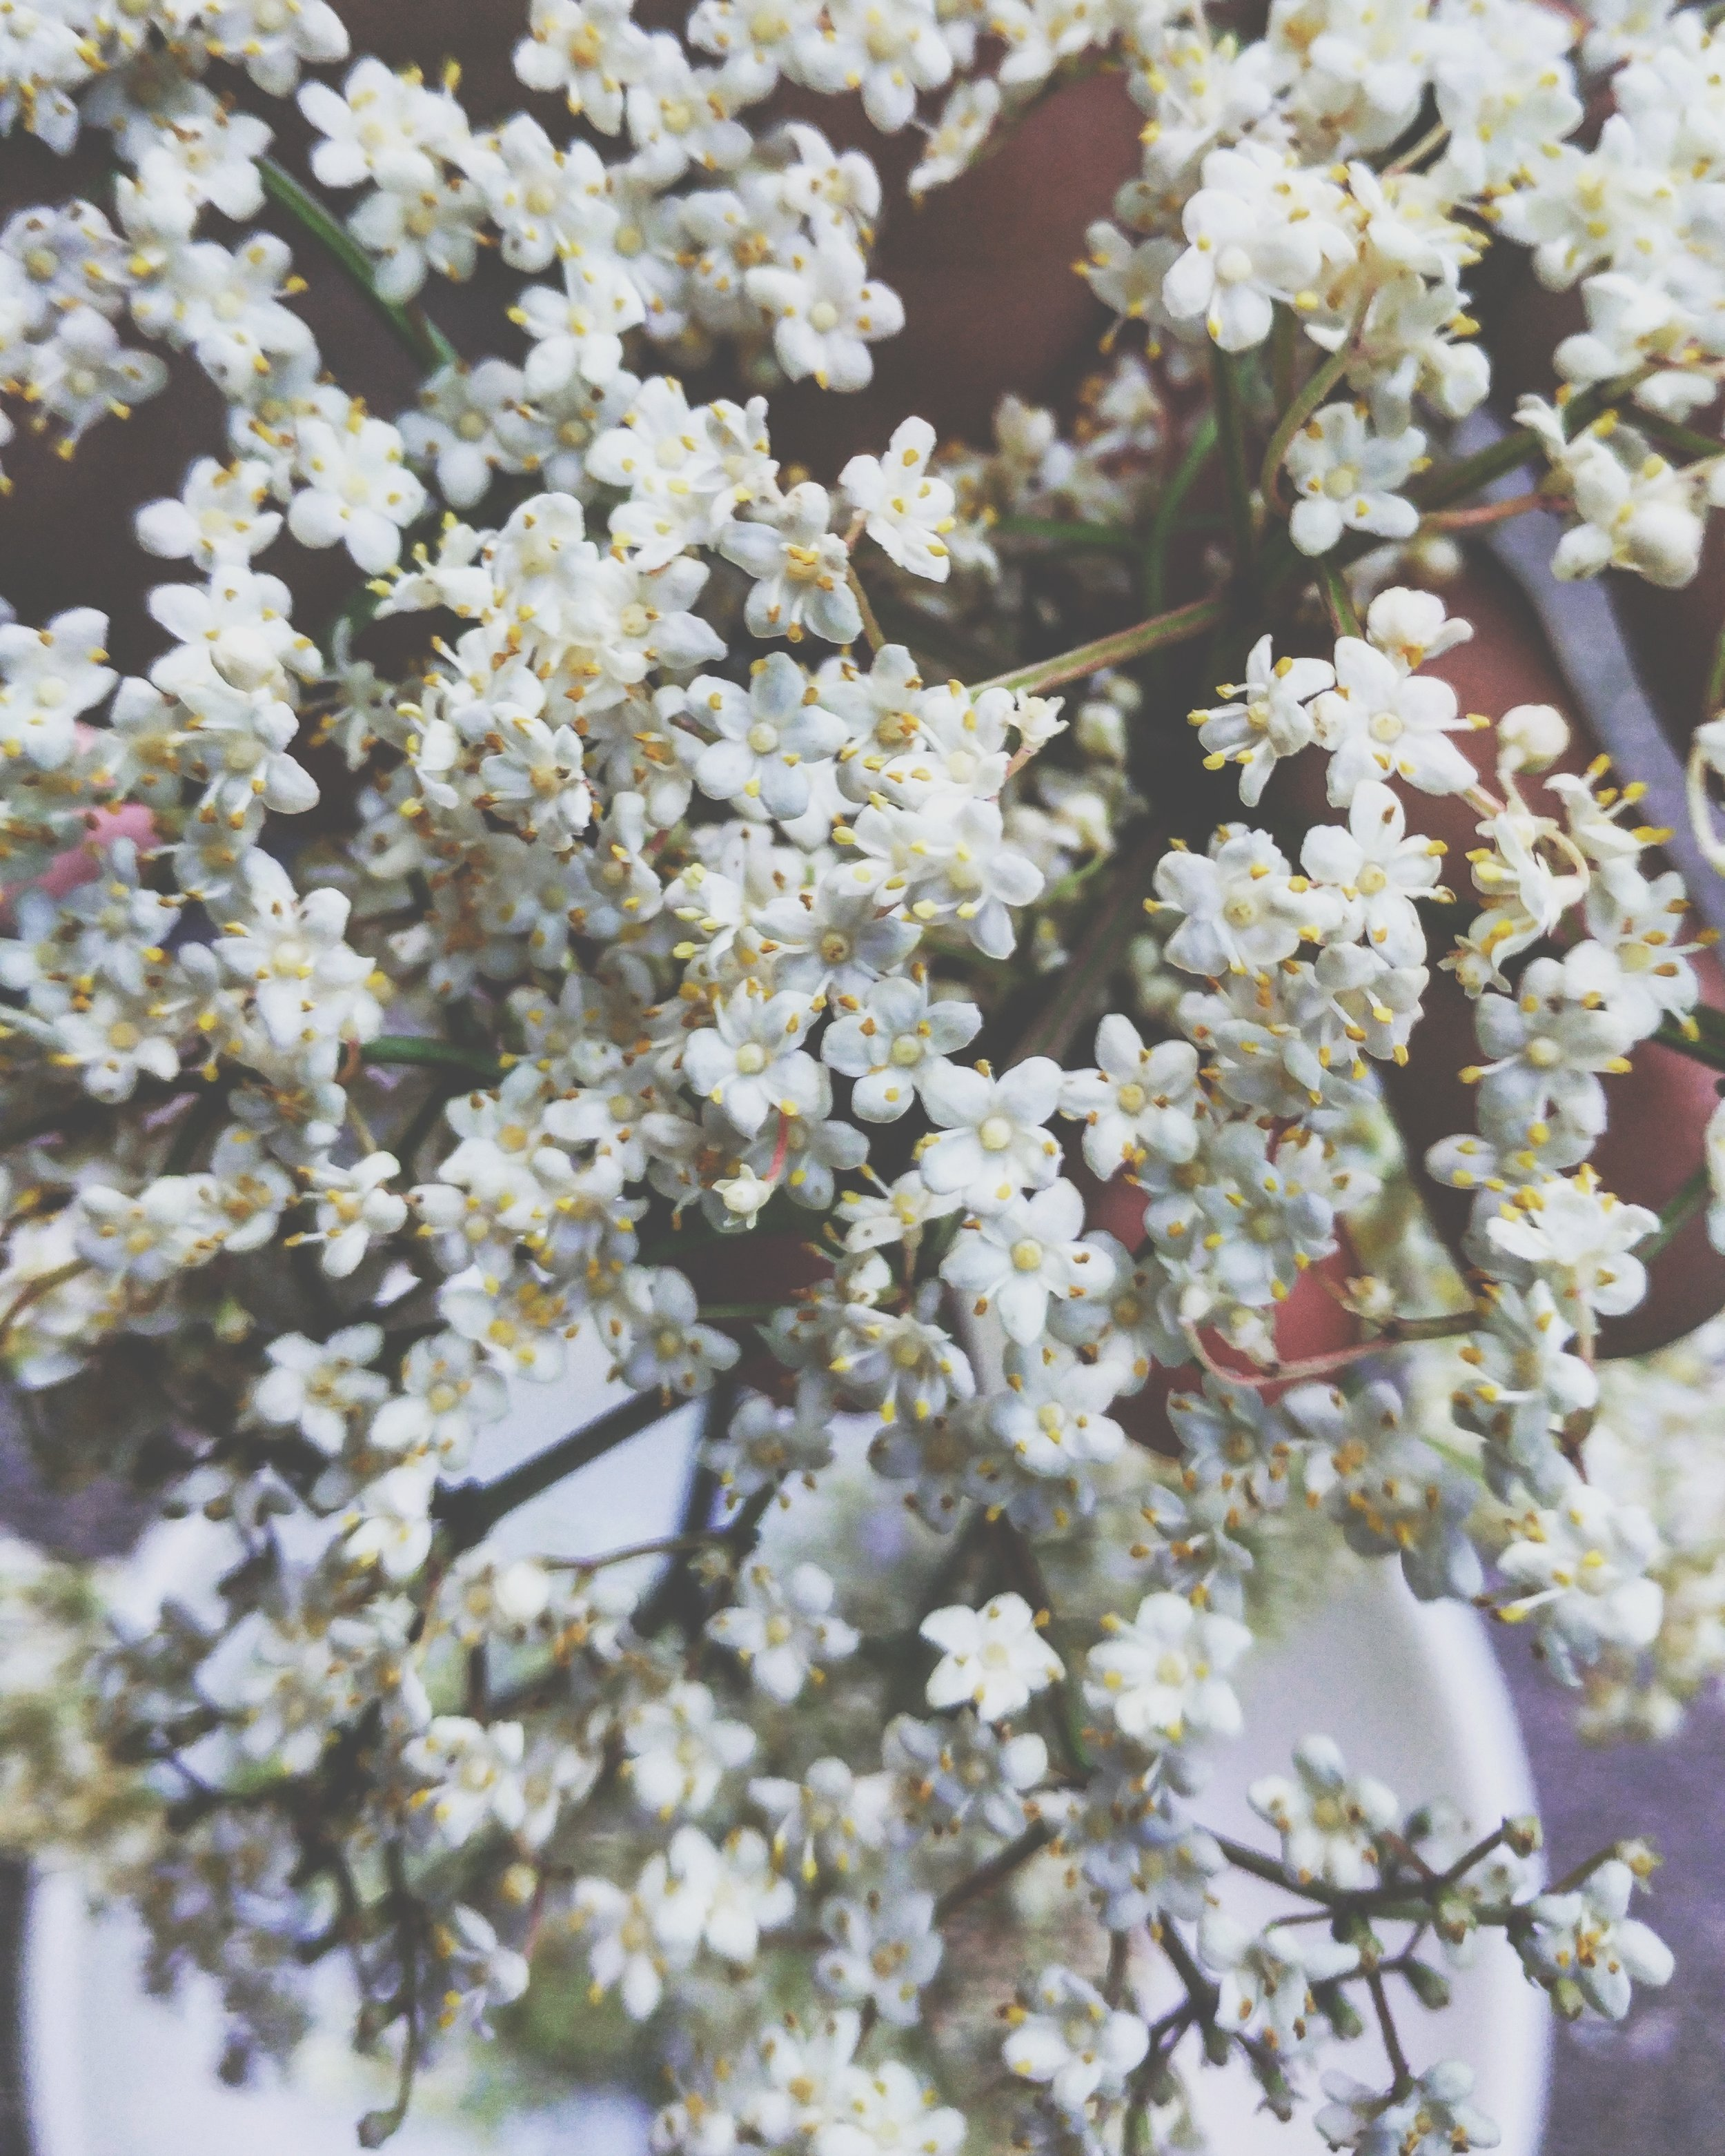 Elderberry flowers in Virginia. Photo Credit: Allie Hawley of  Fiddlehead Farm and Apothecary.